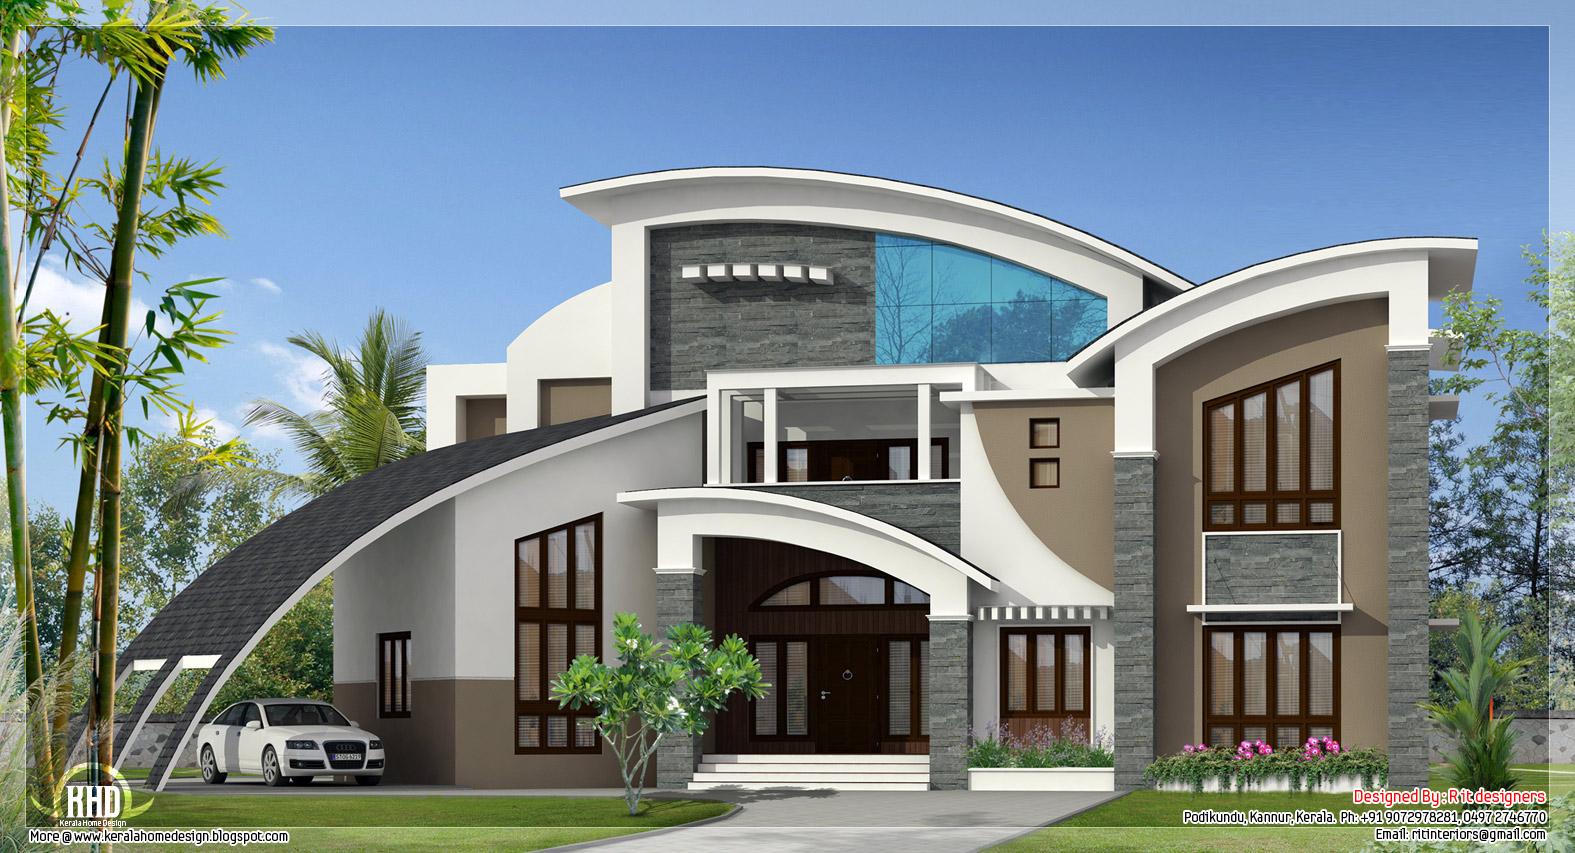 Home design house - Home Designs